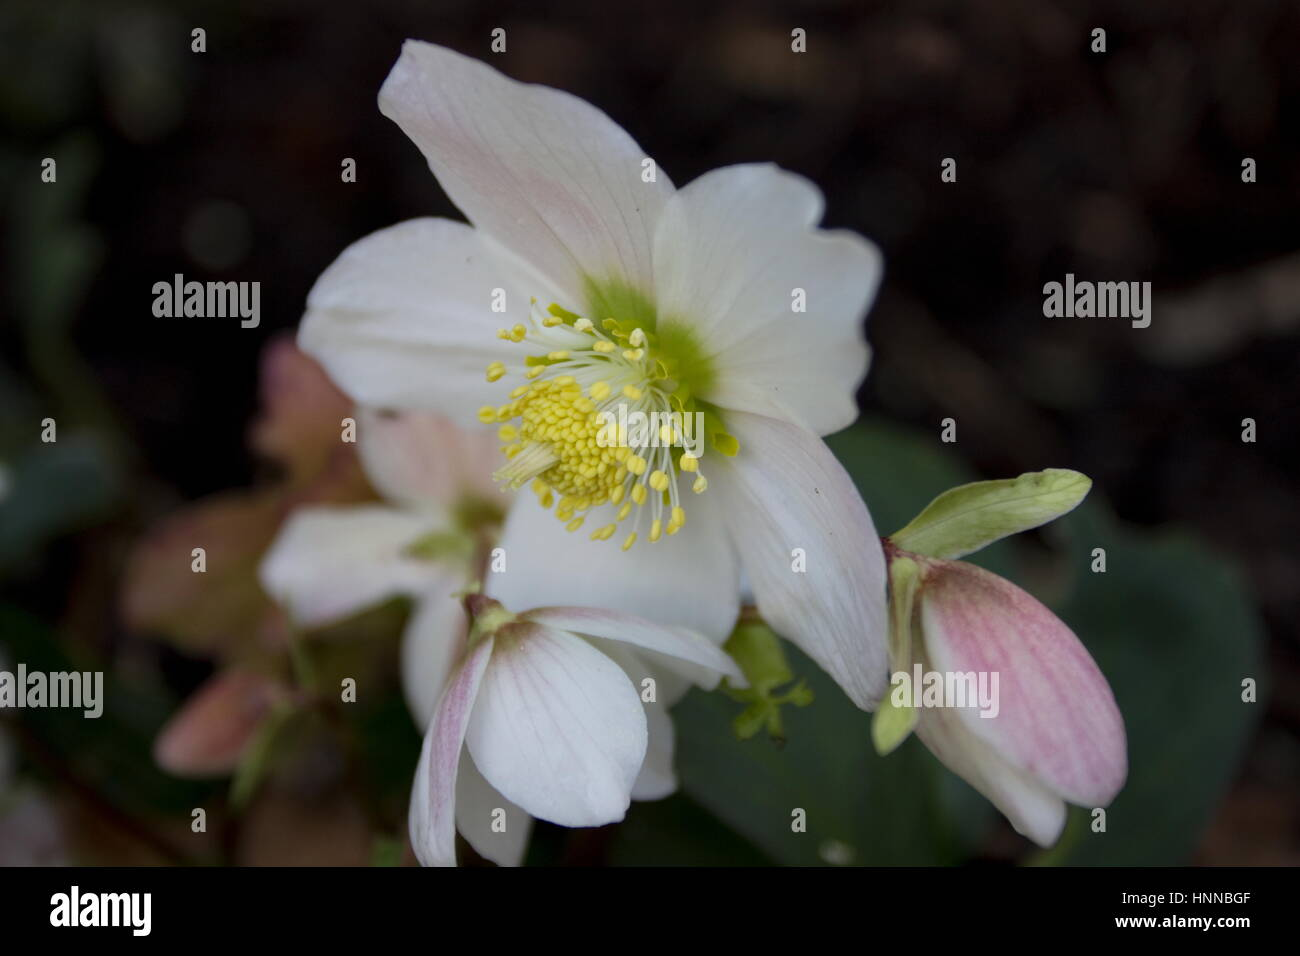 helleborus niger christmas carol blumen im dezember bis februar christrose stockfoto bild. Black Bedroom Furniture Sets. Home Design Ideas